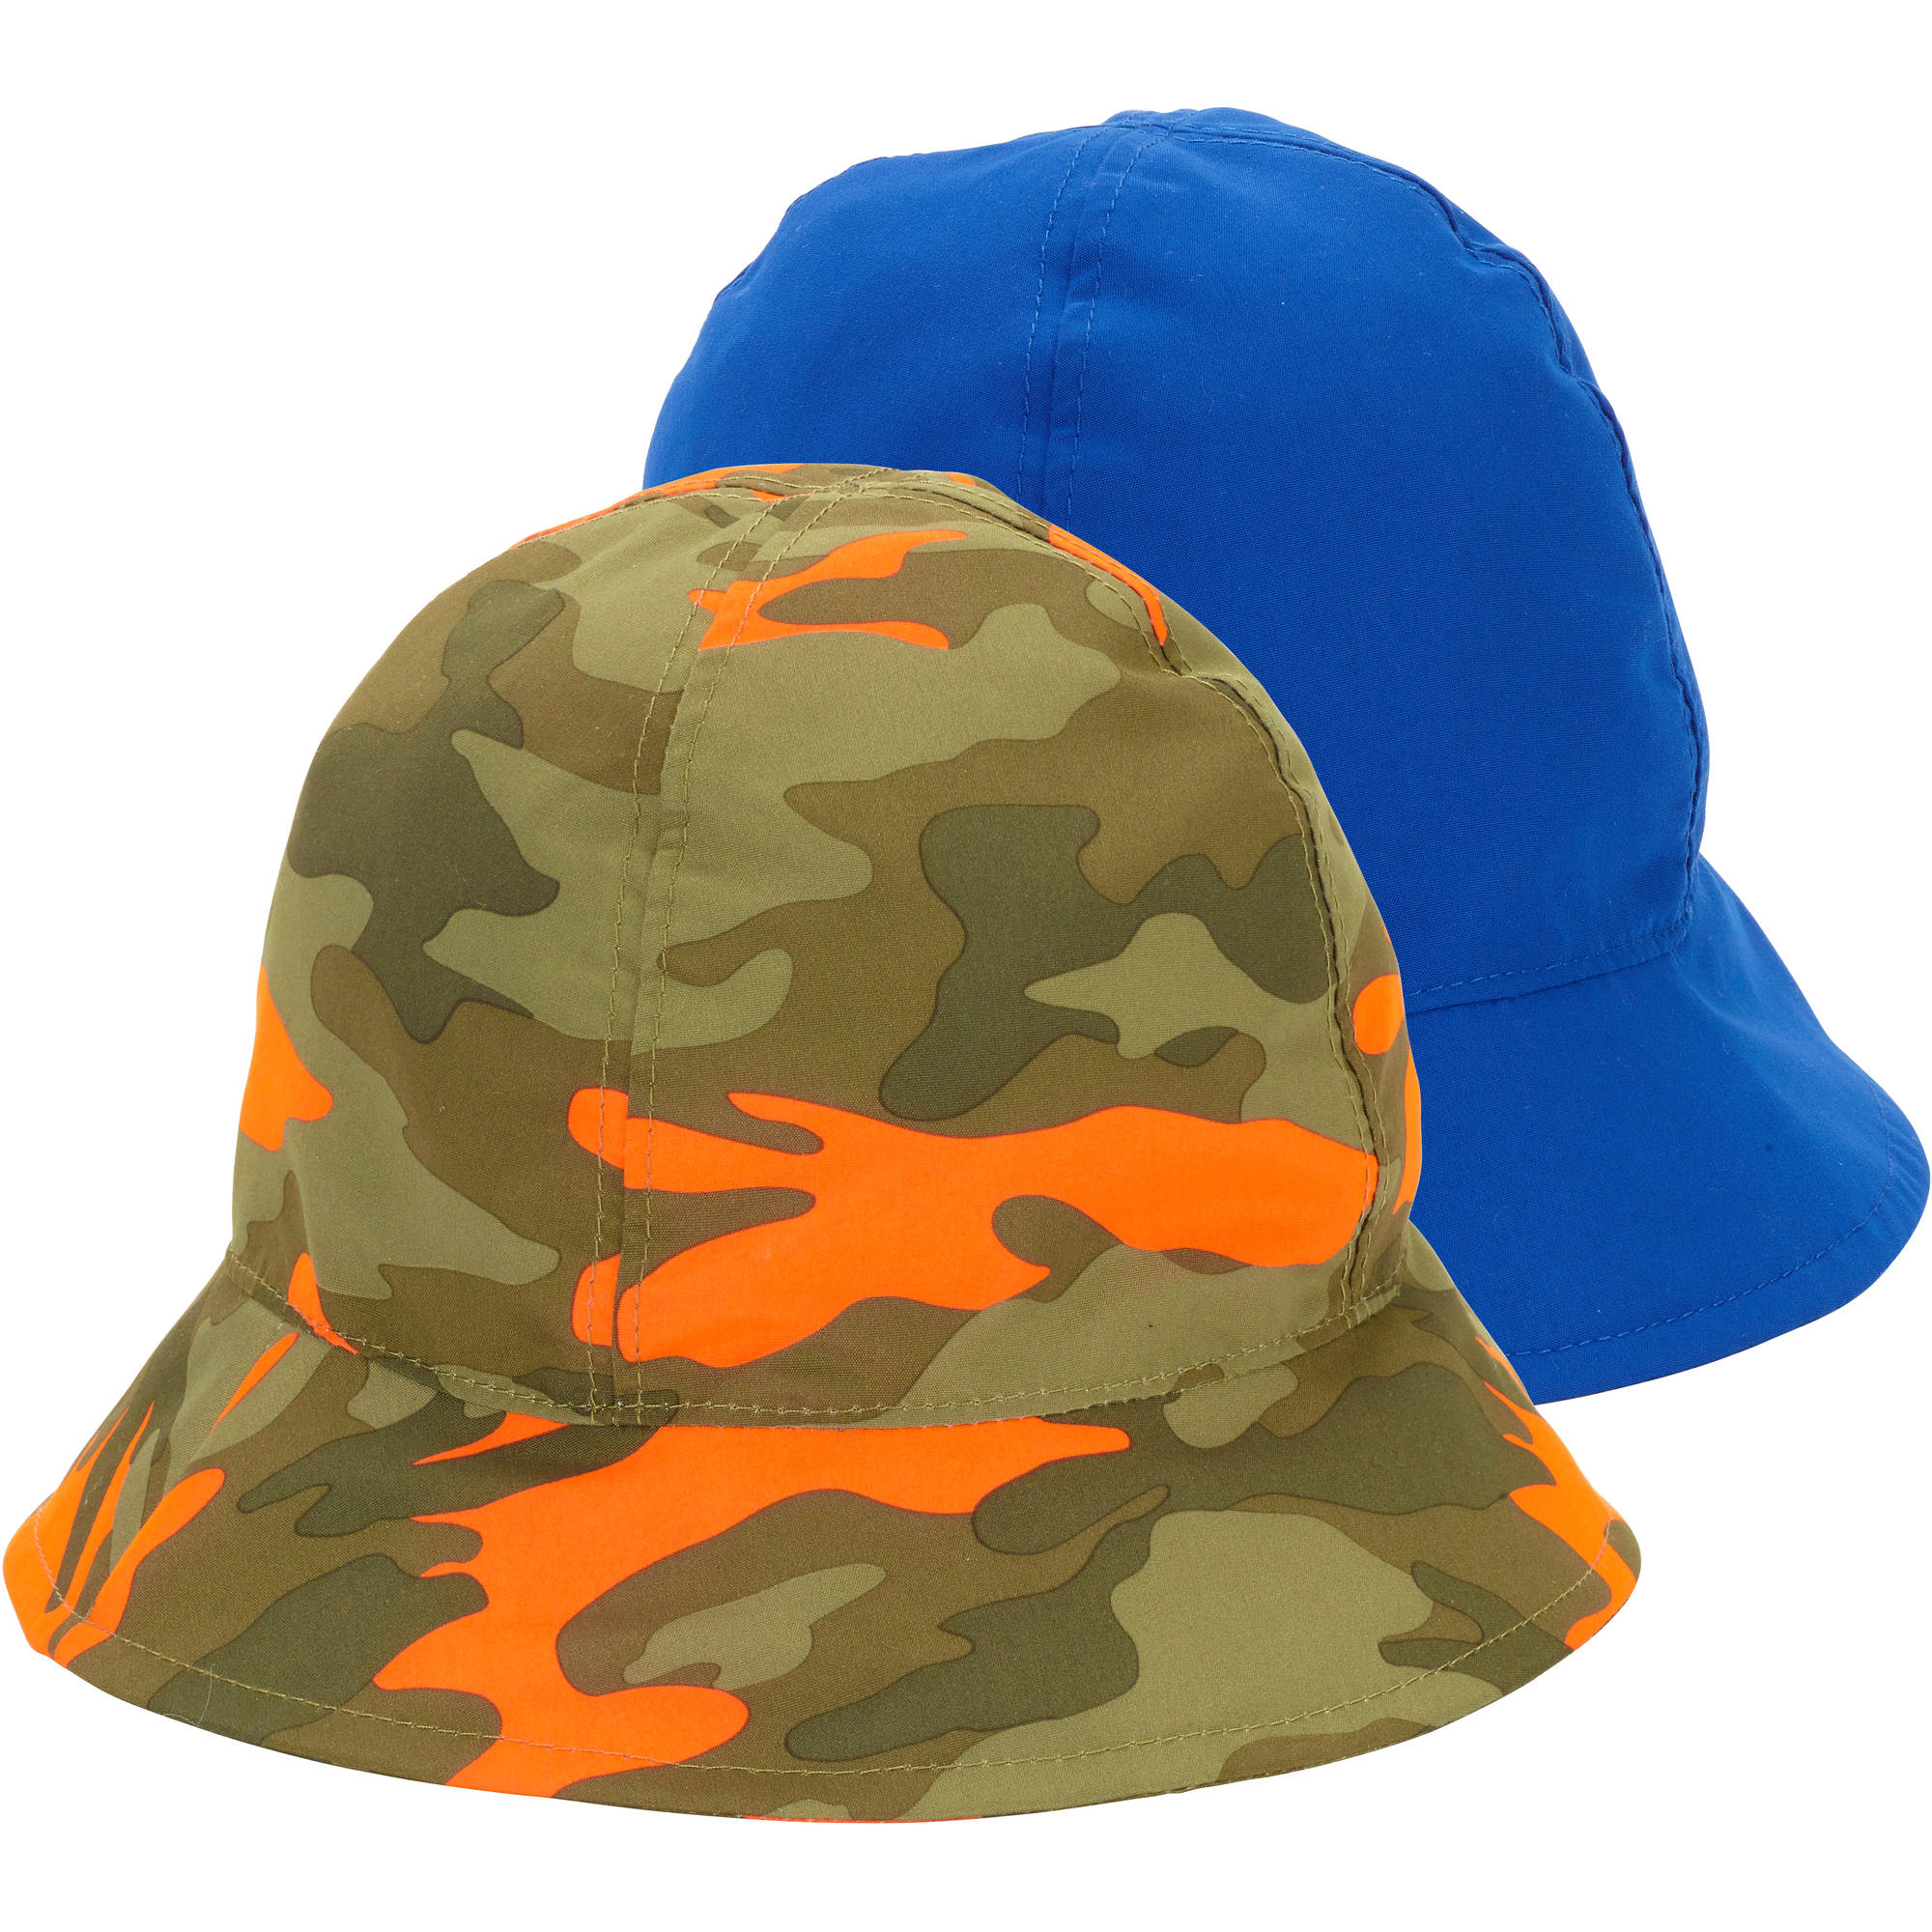 Op Baby Toddler Boy Solid & Printed Swim Bucket Hats - 2 Pack